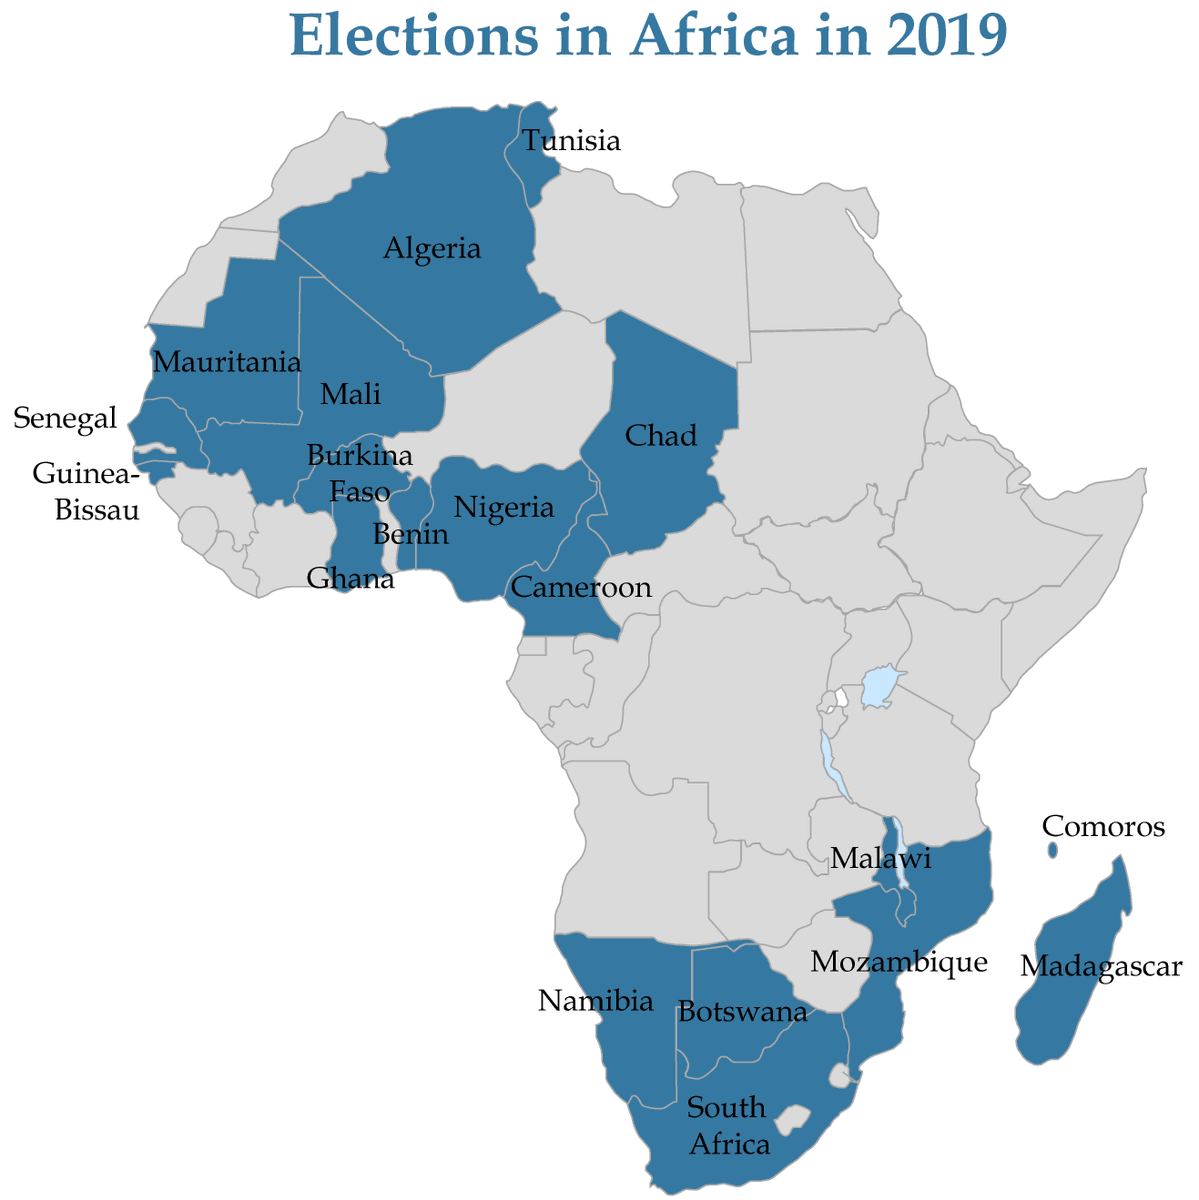 Map showing that elections will be held in 15 African countries in 2019